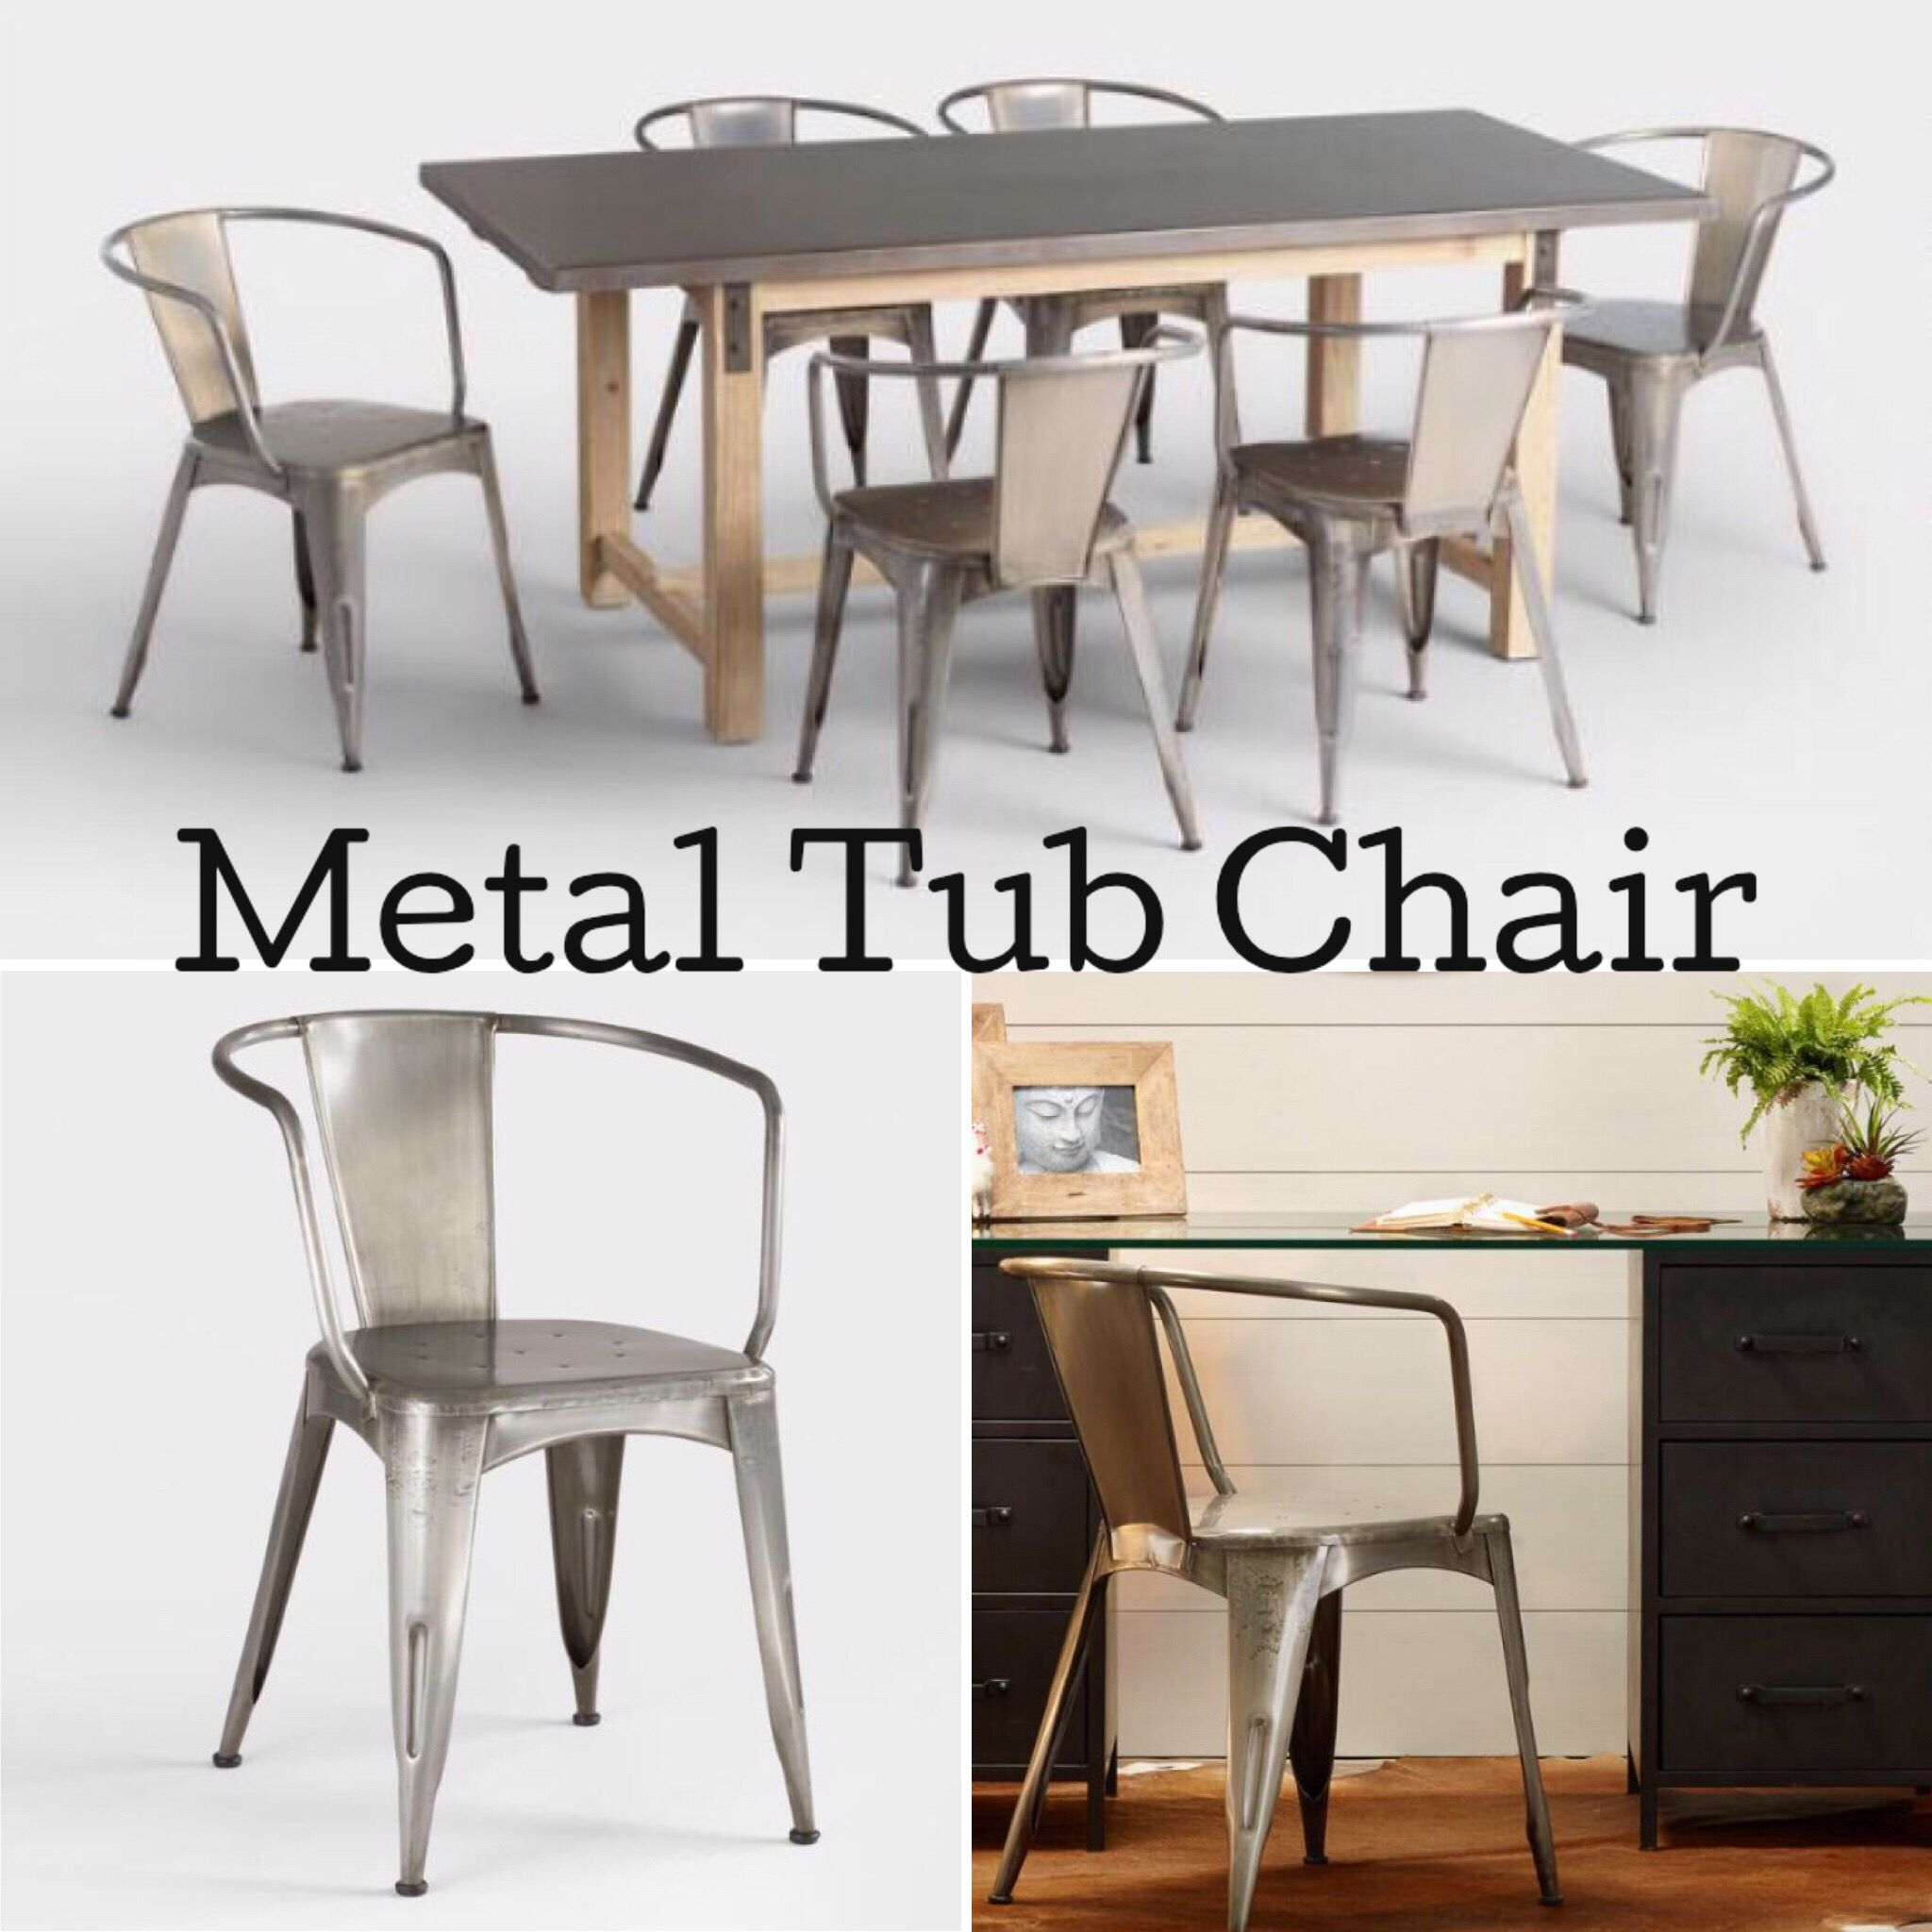 I Love These Metal Tub Chairs. Very Rustic Look For Both Home And Office.